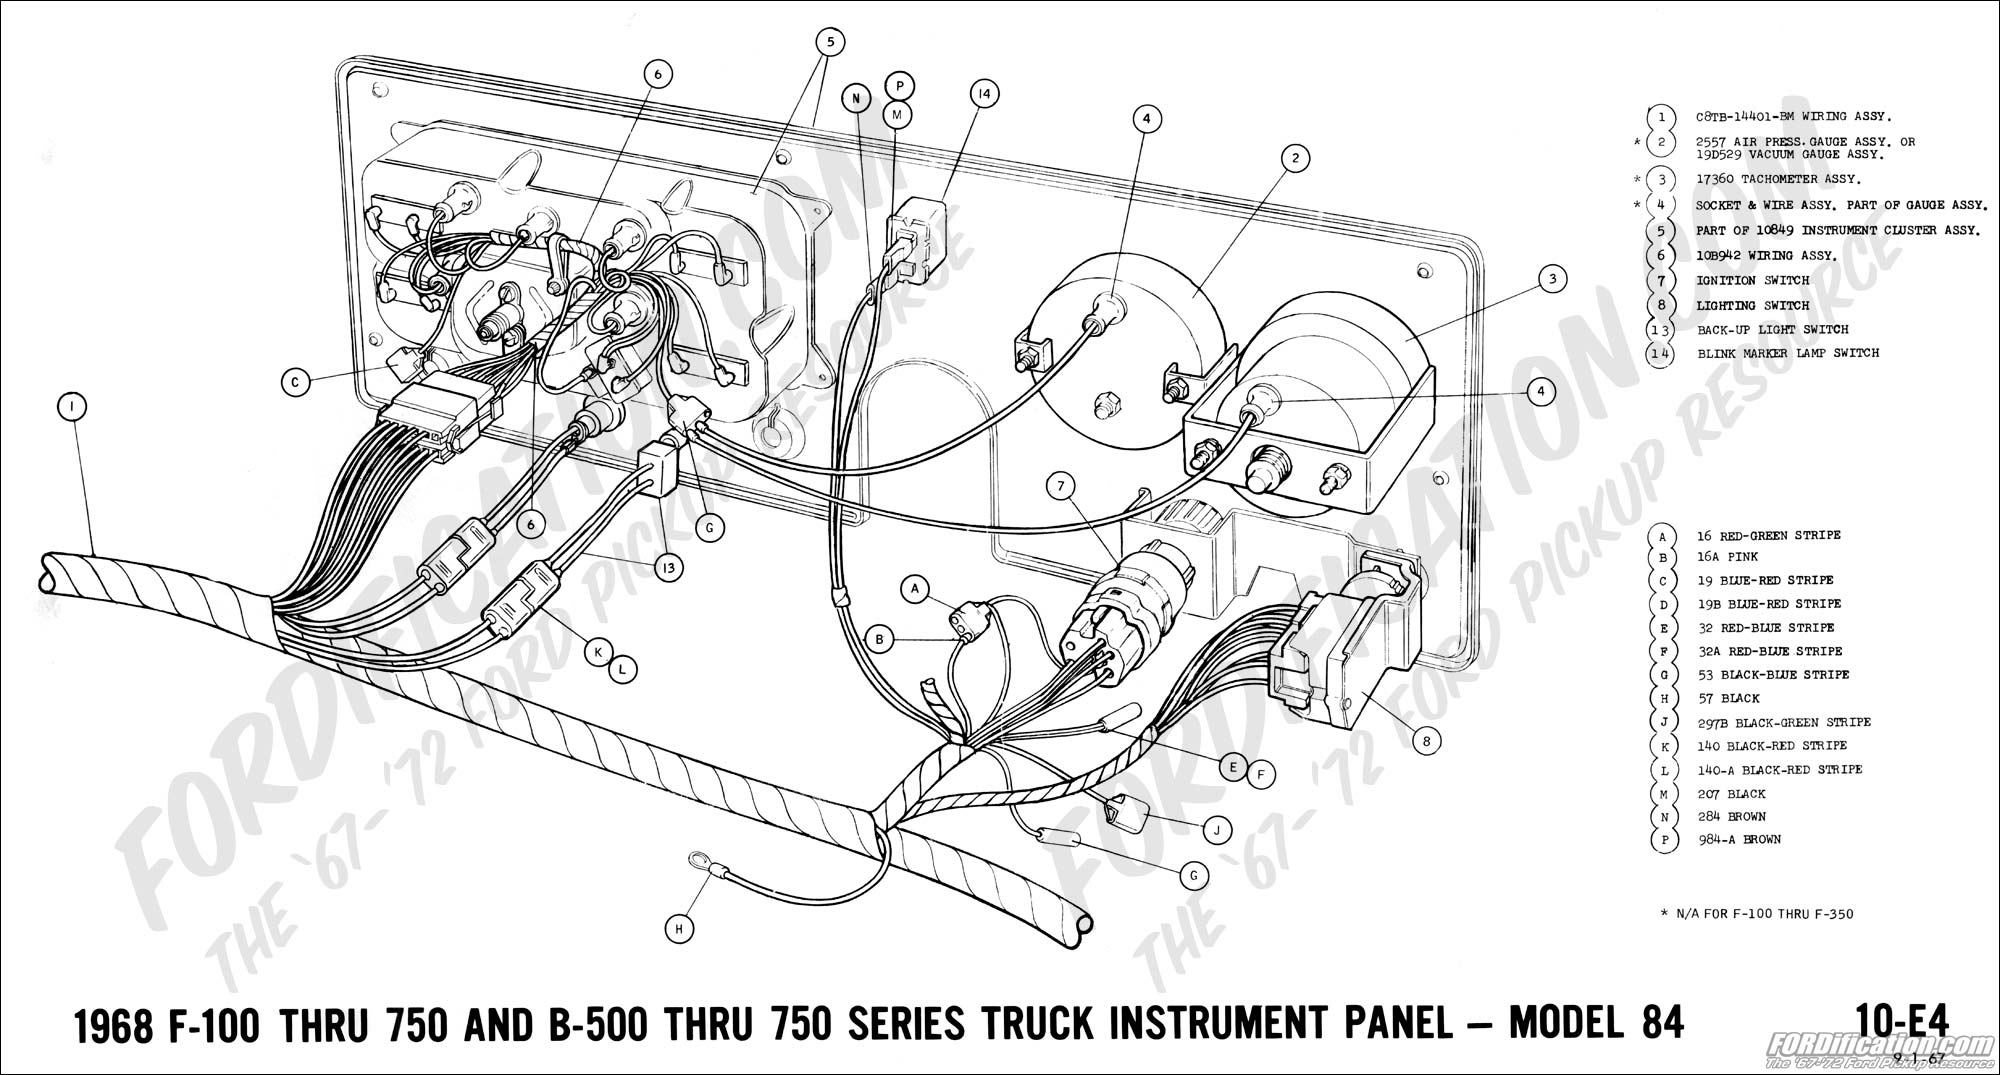 Ford Truck Technical Drawings And Schematics Section H Wiring 2006 Ford Truck Wiring Diagram 2004 Ford F 650 Wiring Diagrams On 1968 F 100 Thru F 750 And B 500 Thru F 750 Instrument Panel (model 84)